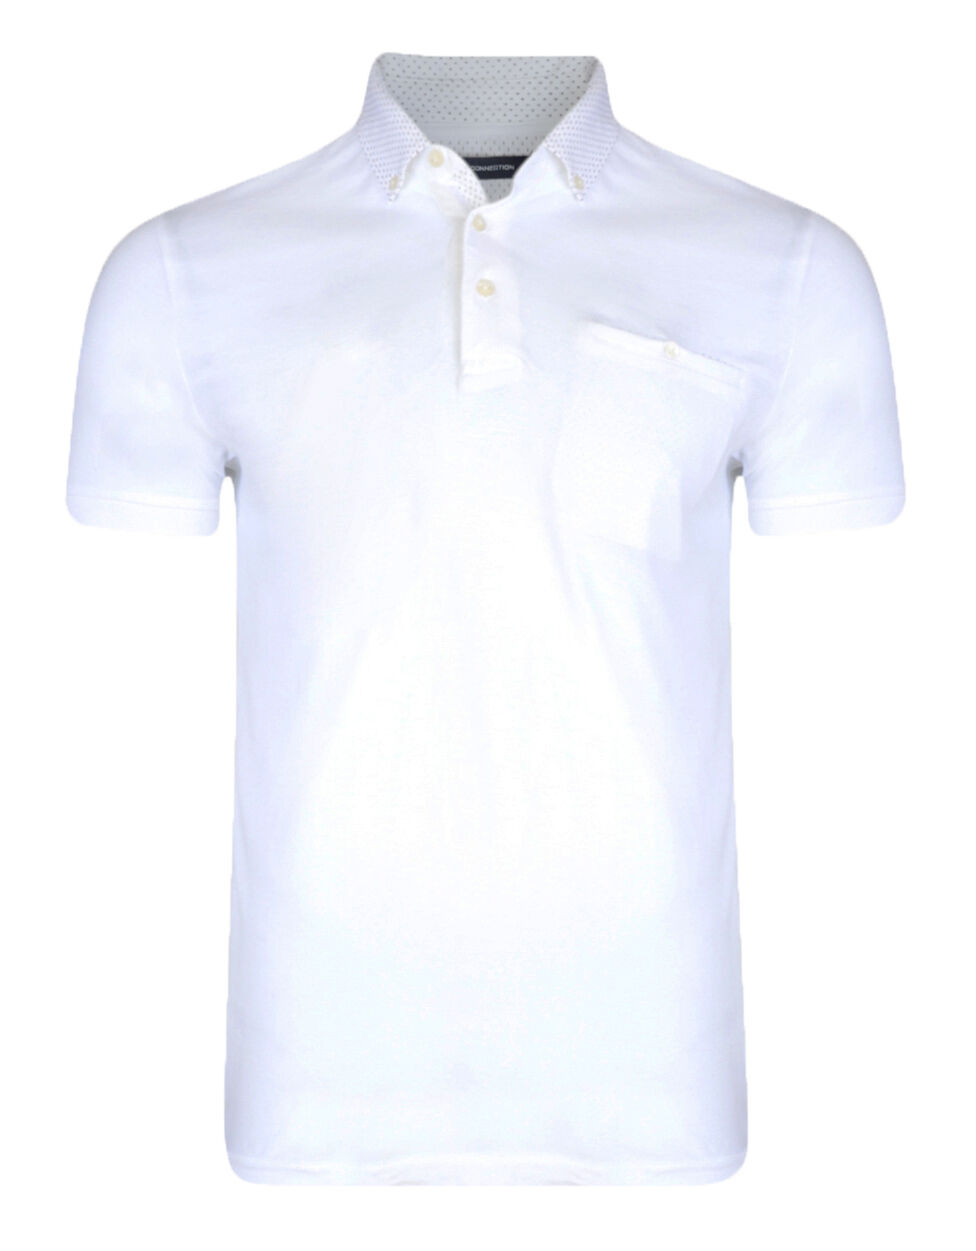 French Connection Men's Slim Fit Cotton Polo Shirt White Dott Collar Jersey Top